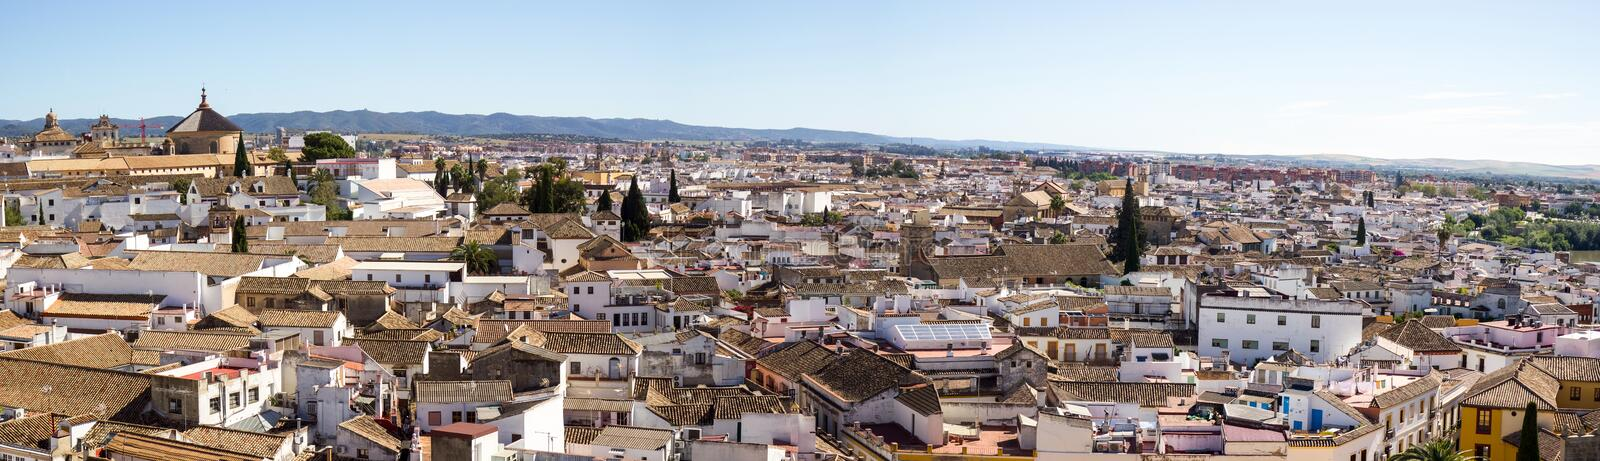 Cordoba panoramic view. Old Mezquita bell tower reopened in 2014 after 24 years of restoration. Beautiful views of Cordoba on top royalty free stock images